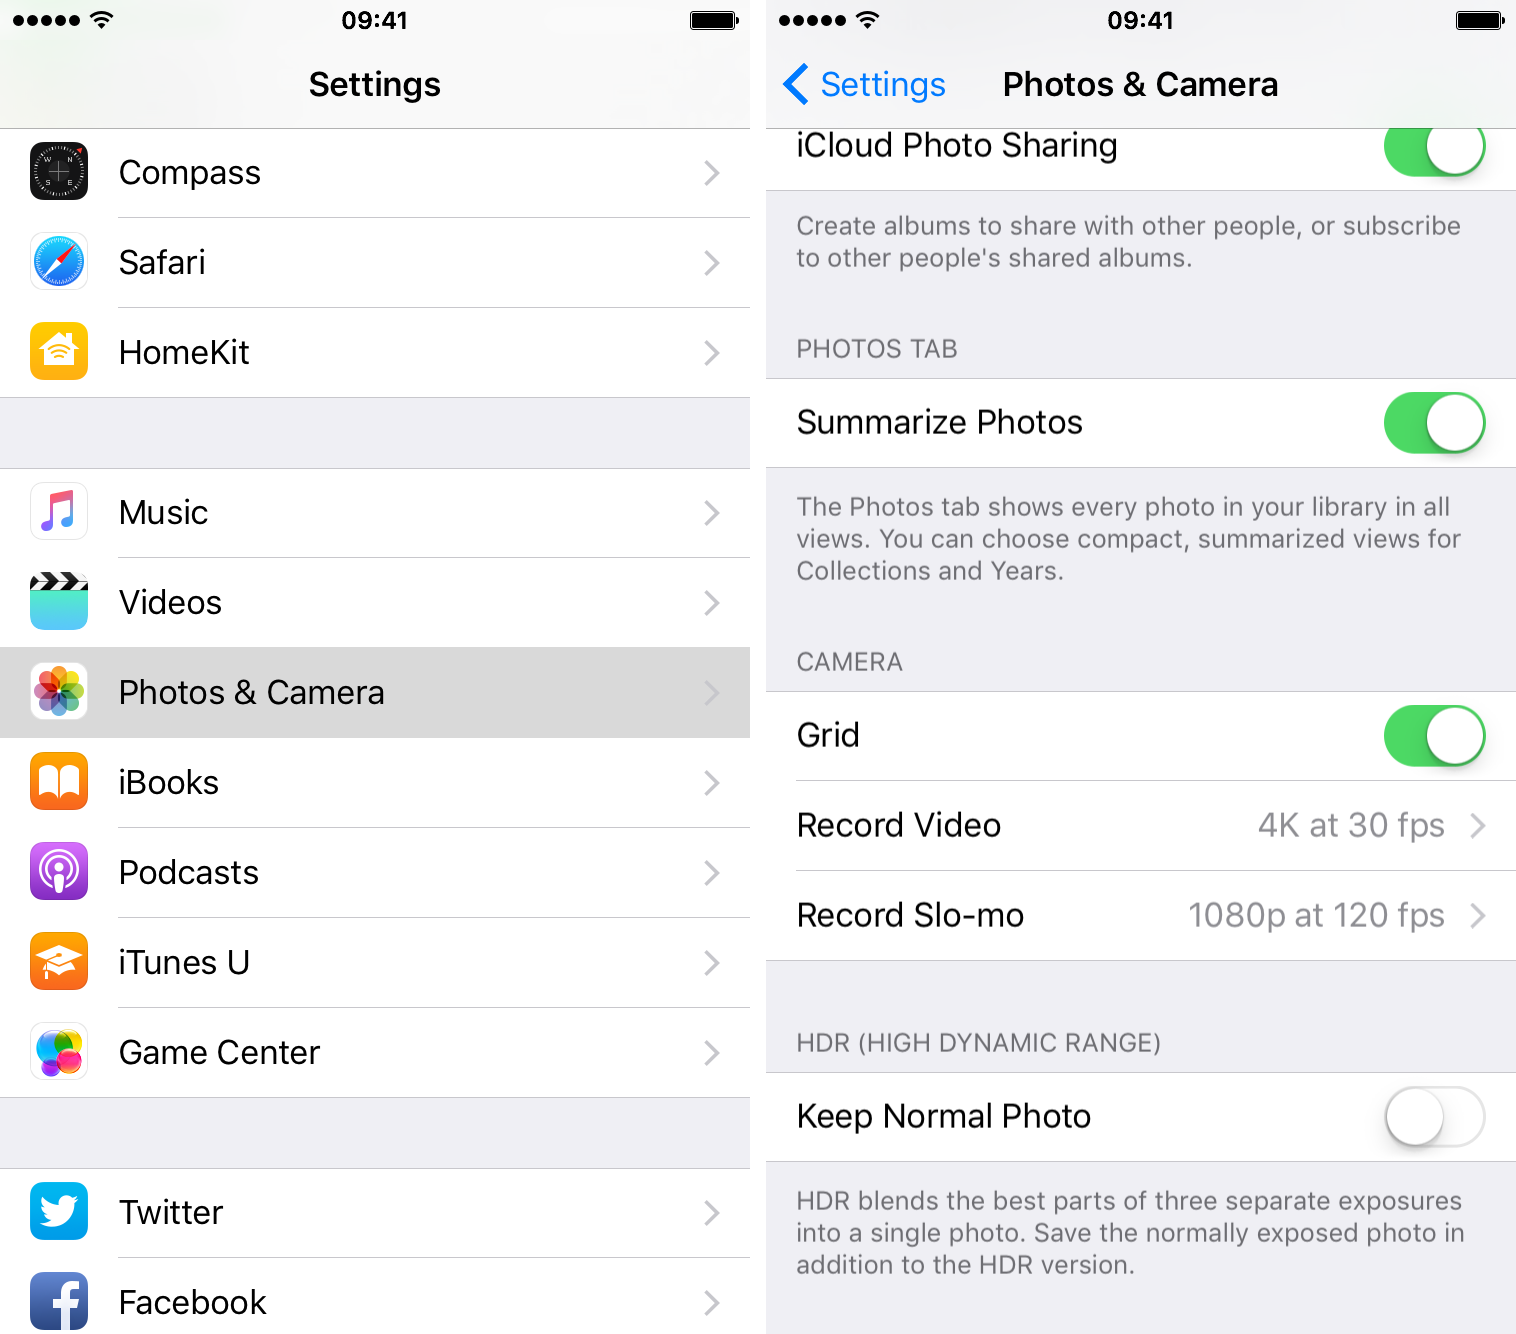 How to turn off HDR photo duplicates iPhone screenshot 001